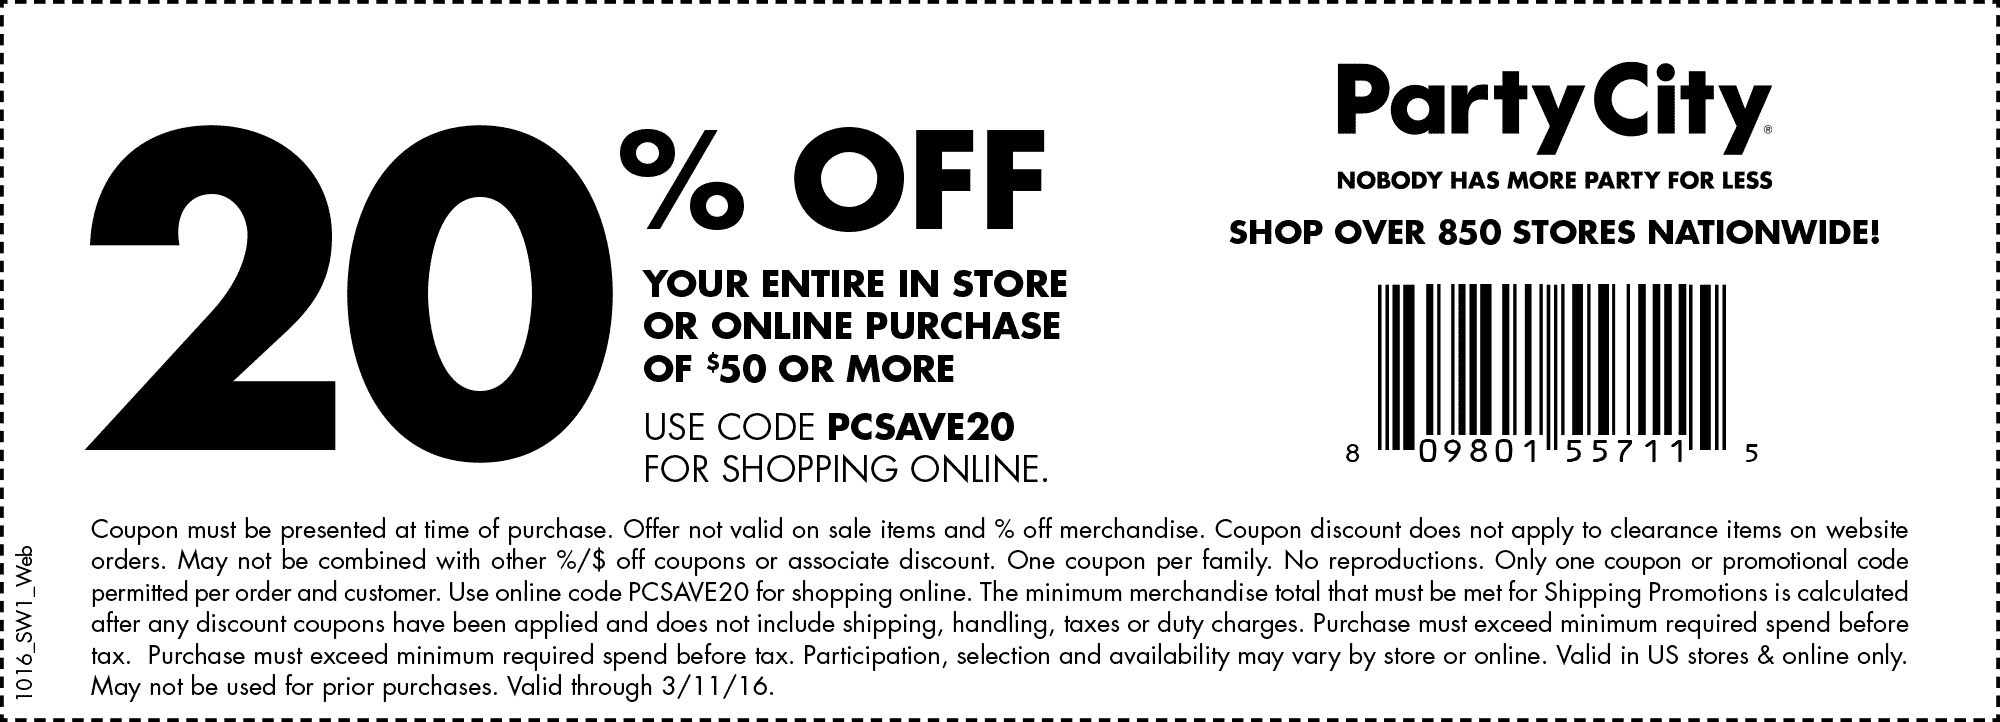 Party City Coupon October 2019 20% off $50 at Party City, or online via promo code PCSAVE20